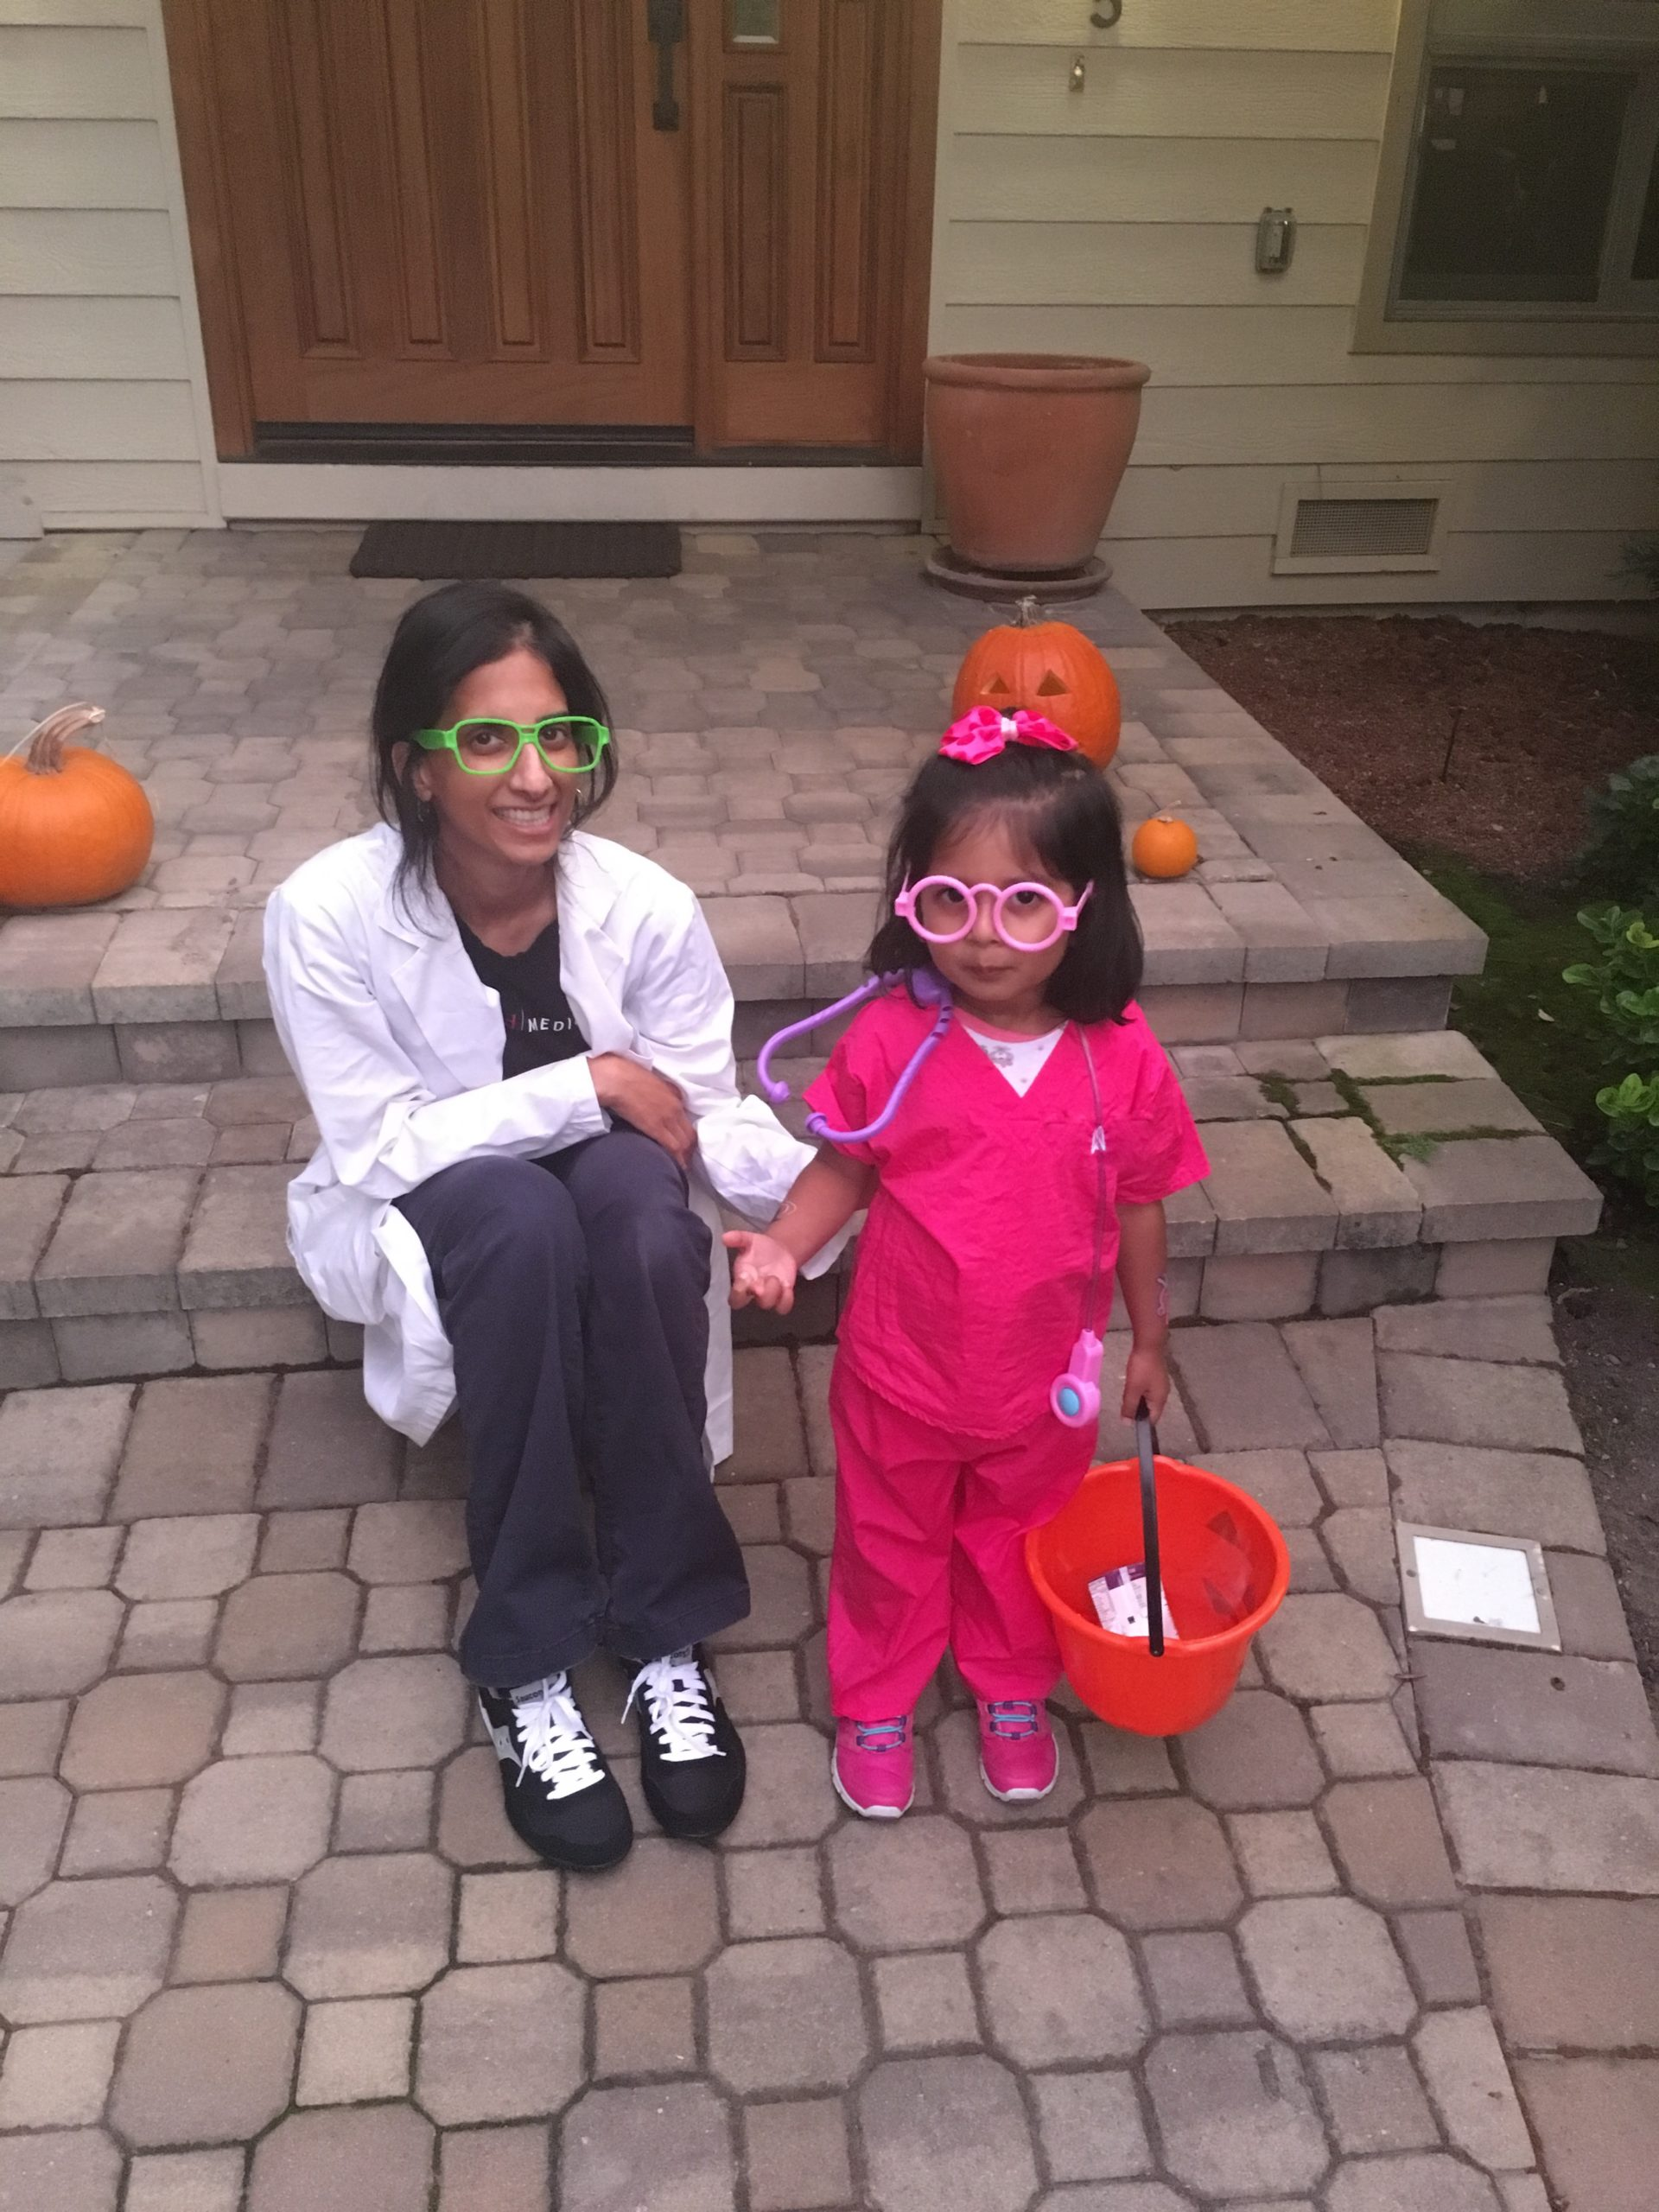 Chetty and her daughter on Halloween.